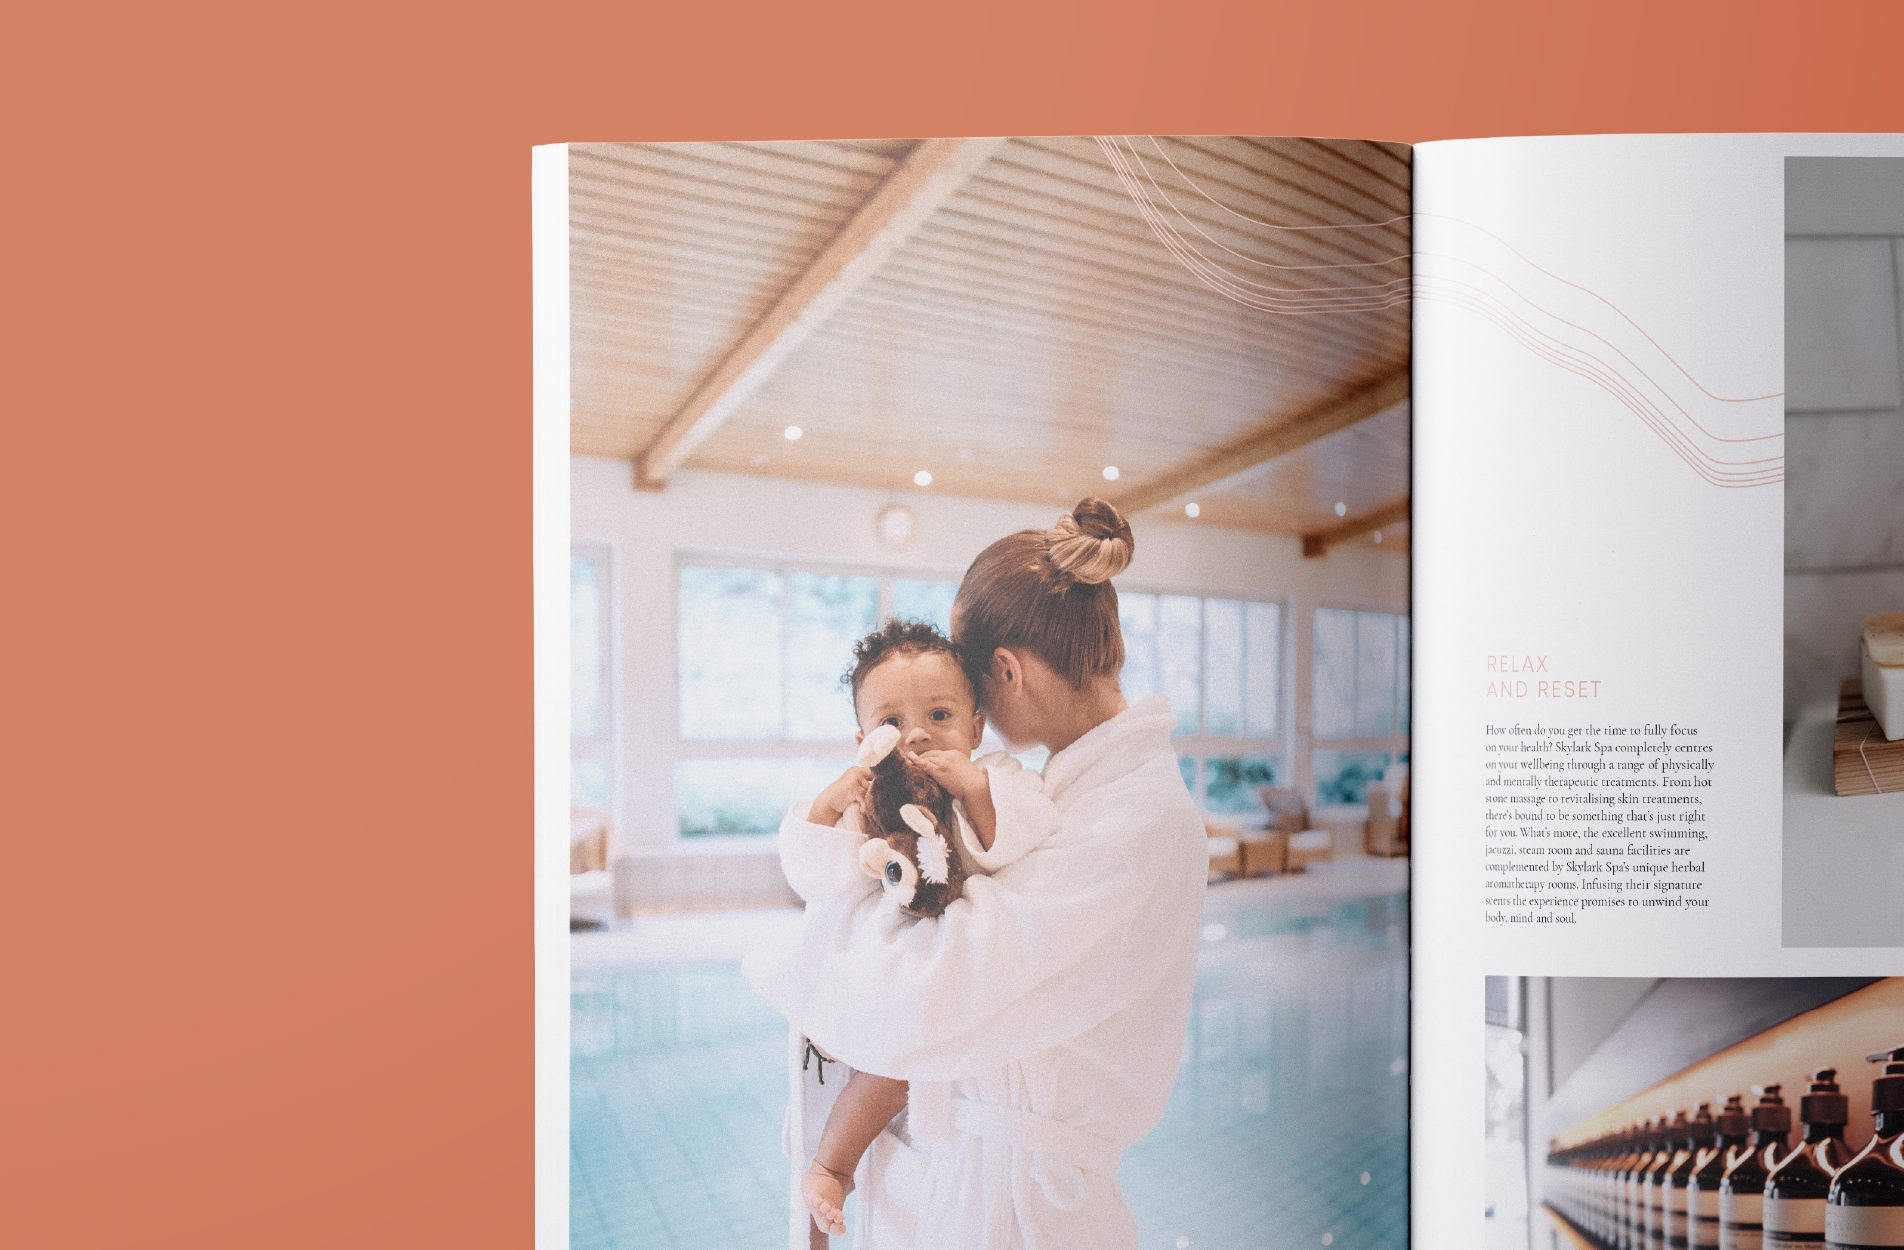 Brochure visuals that show a mother and child wrapped in soft white towels by the pool side